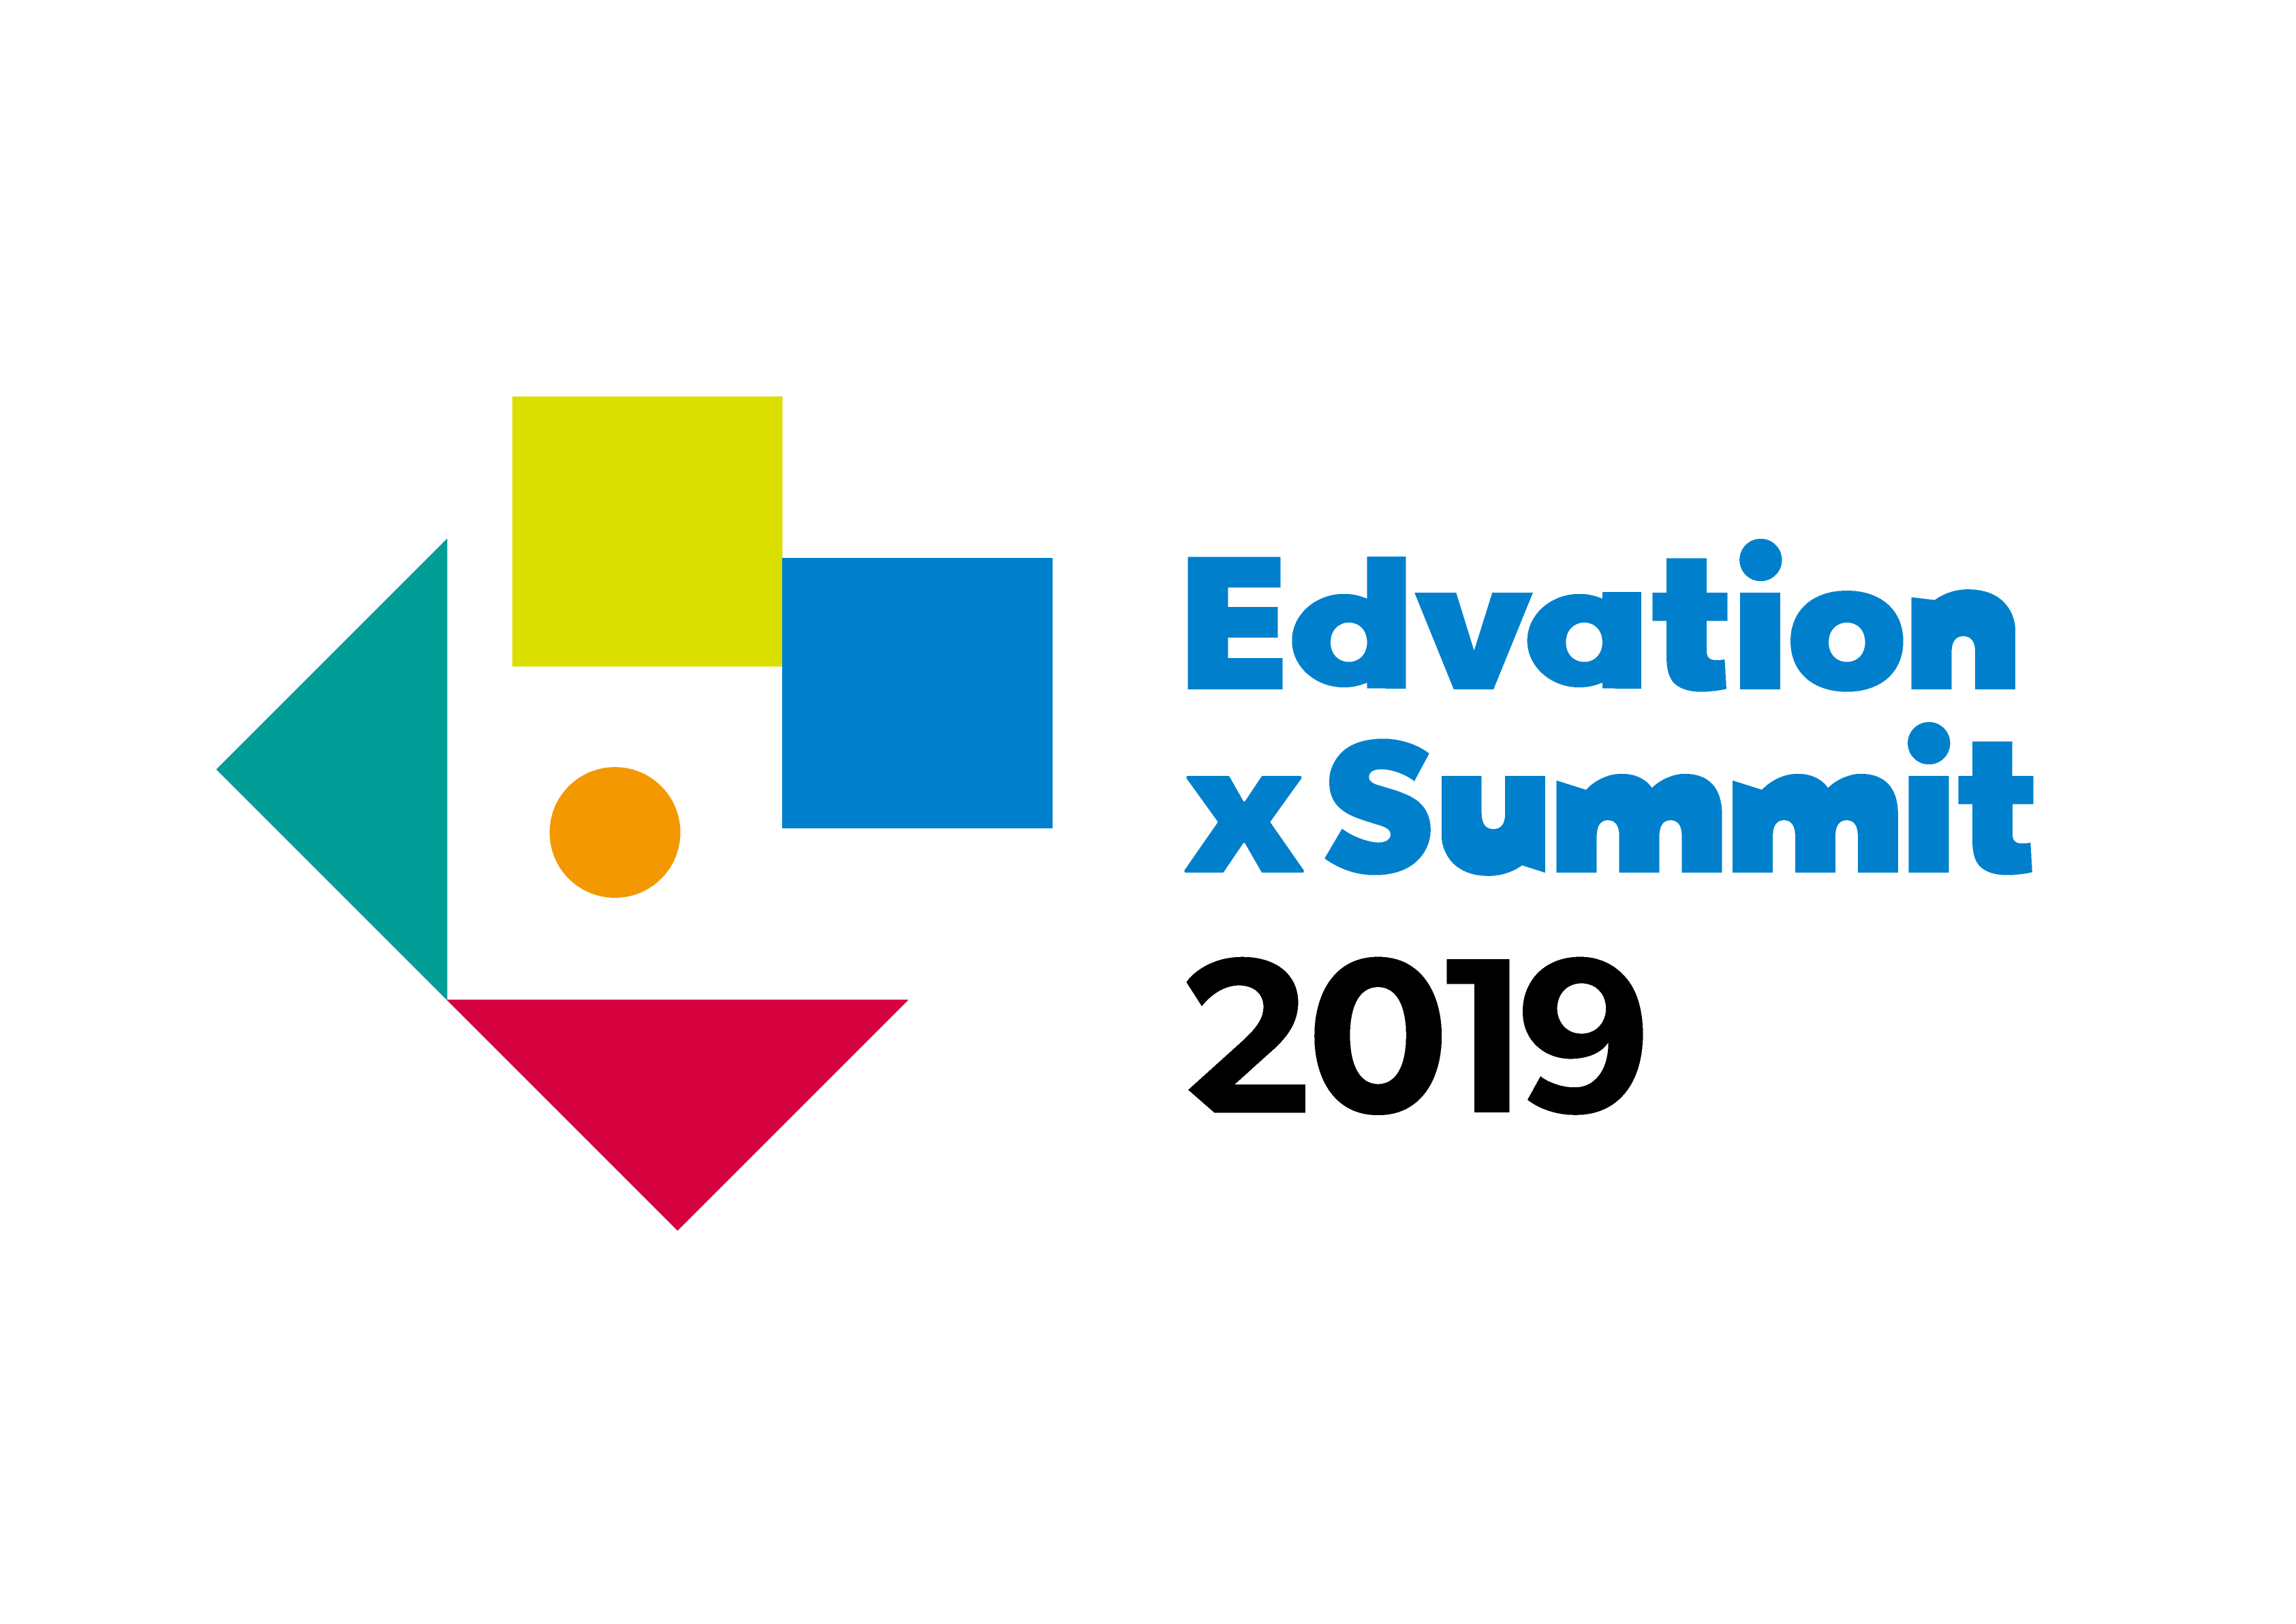 EdvationxSummit2019ロゴ